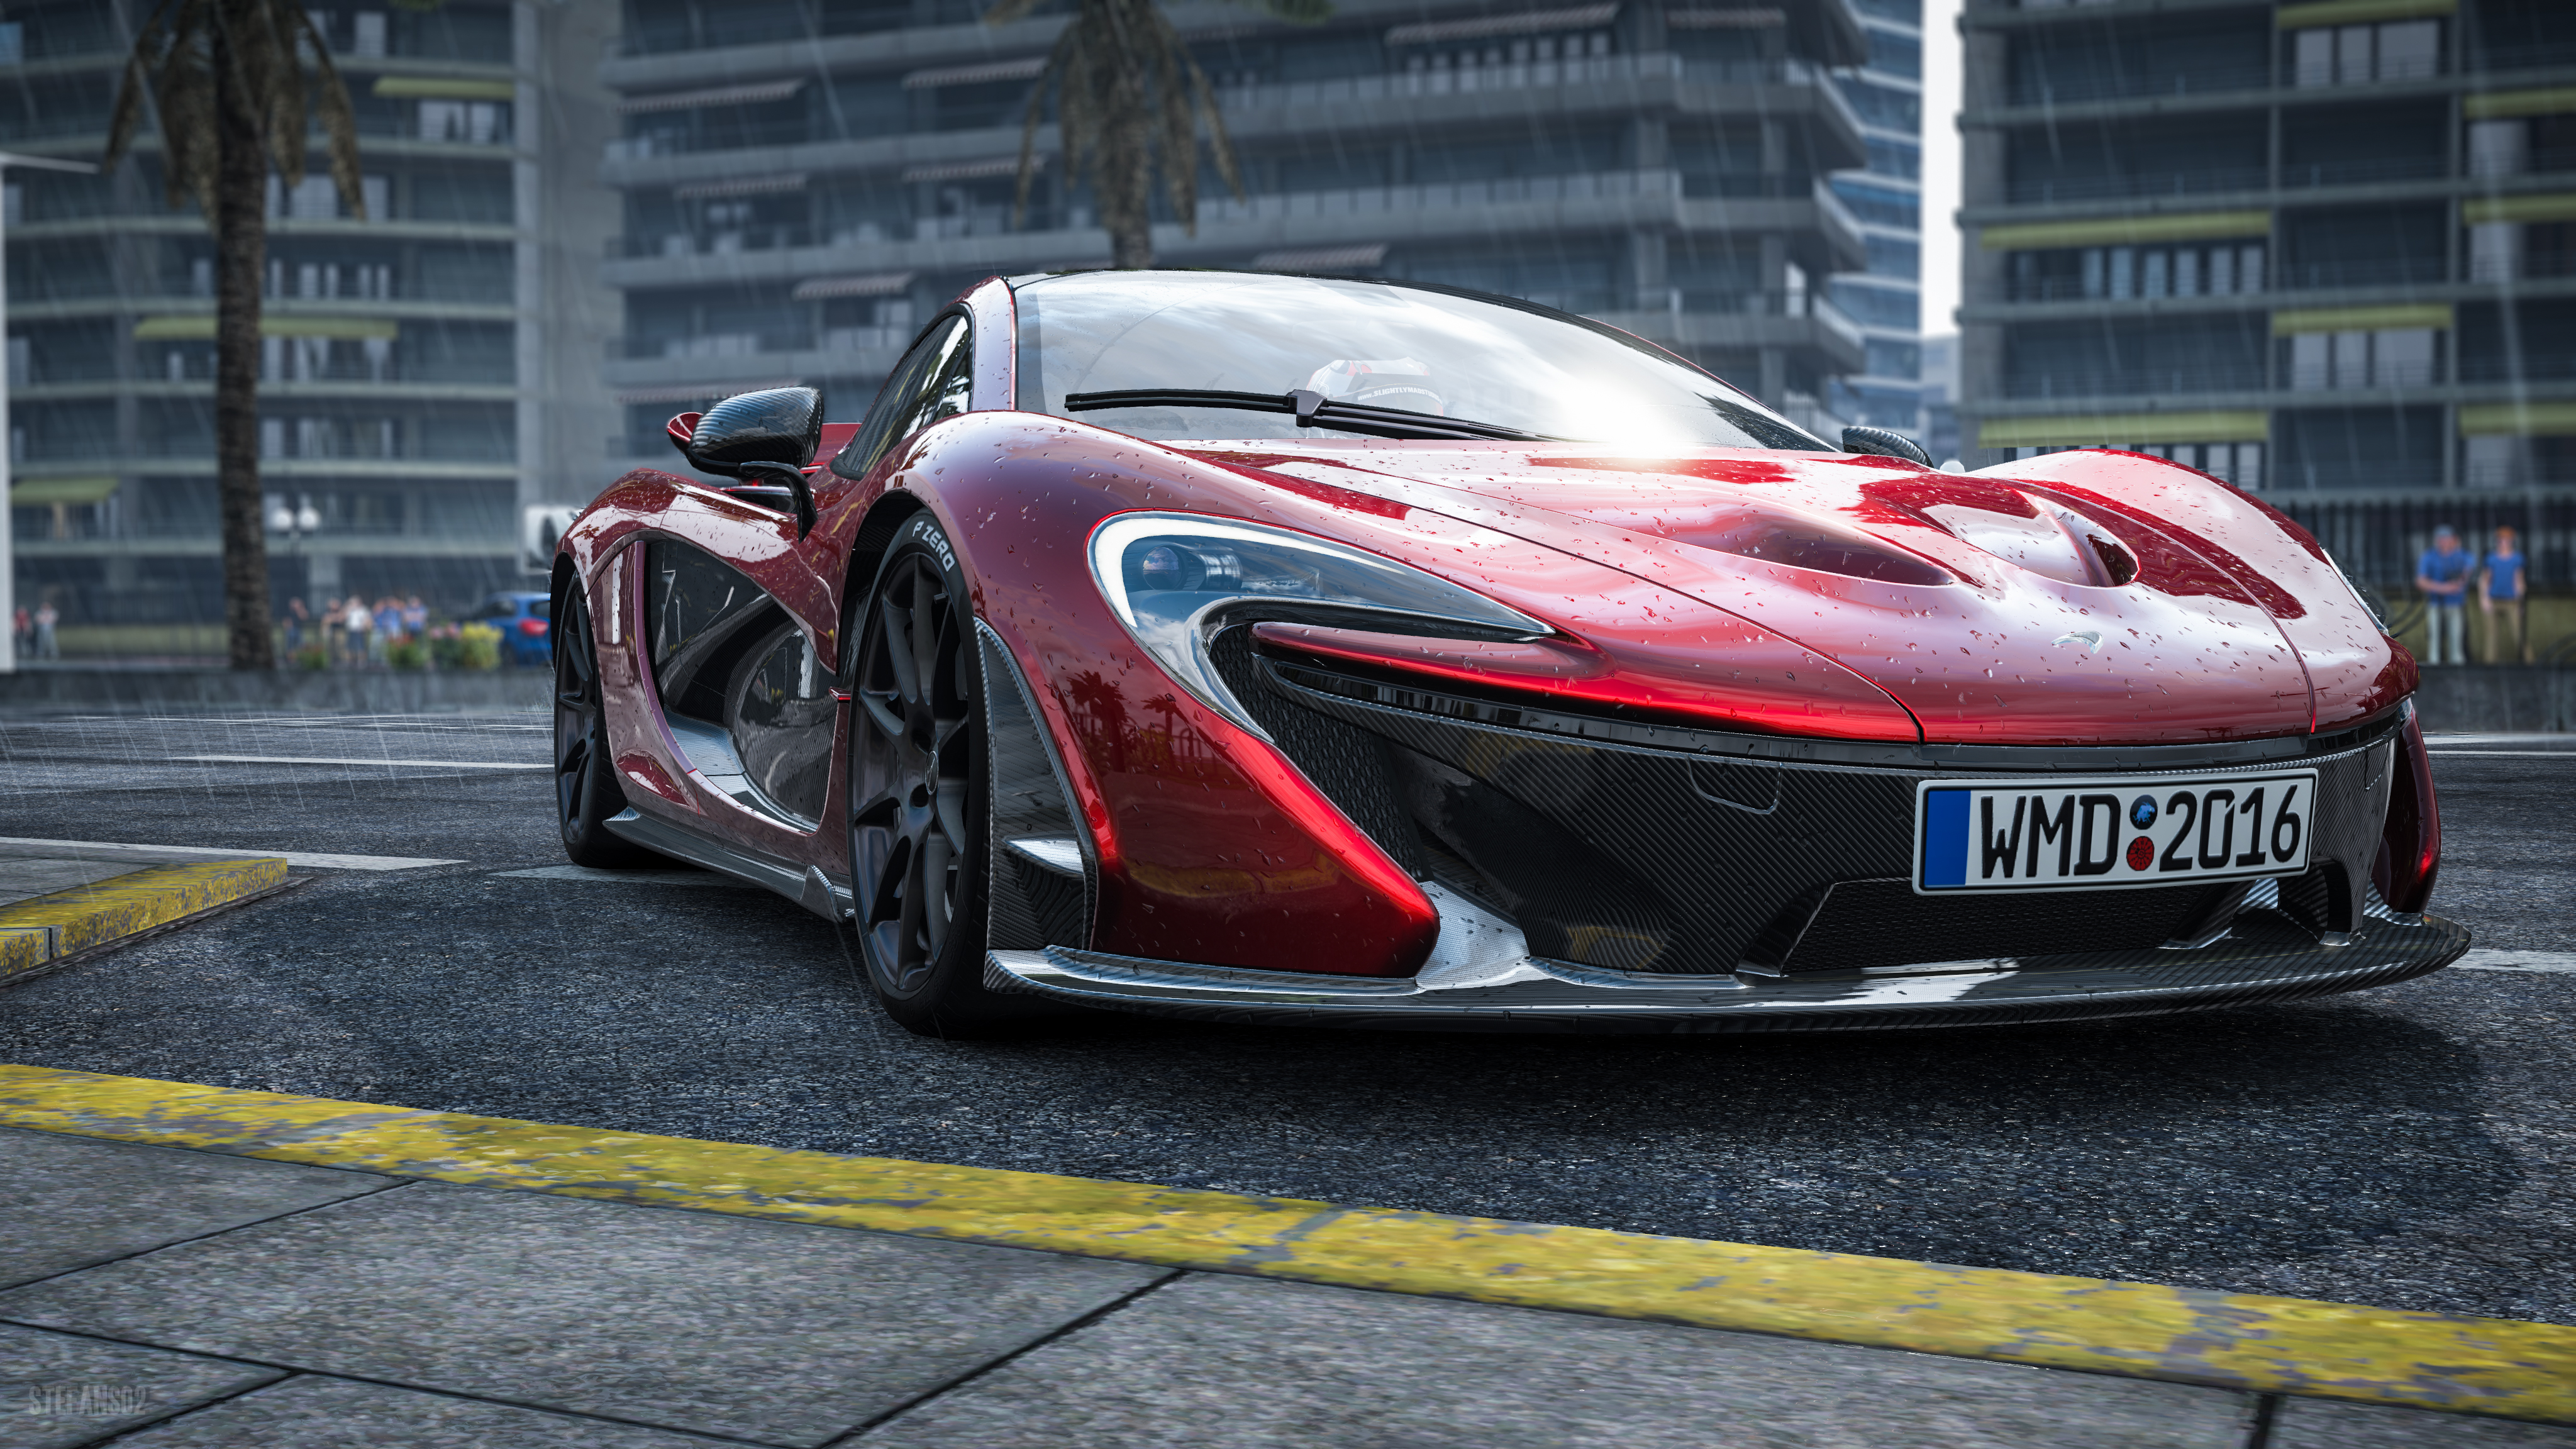 54325 download wallpaper Sports, Mclaren, Cars, Front View, Sports Car, Supercar, Mclaren P1 screensavers and pictures for free